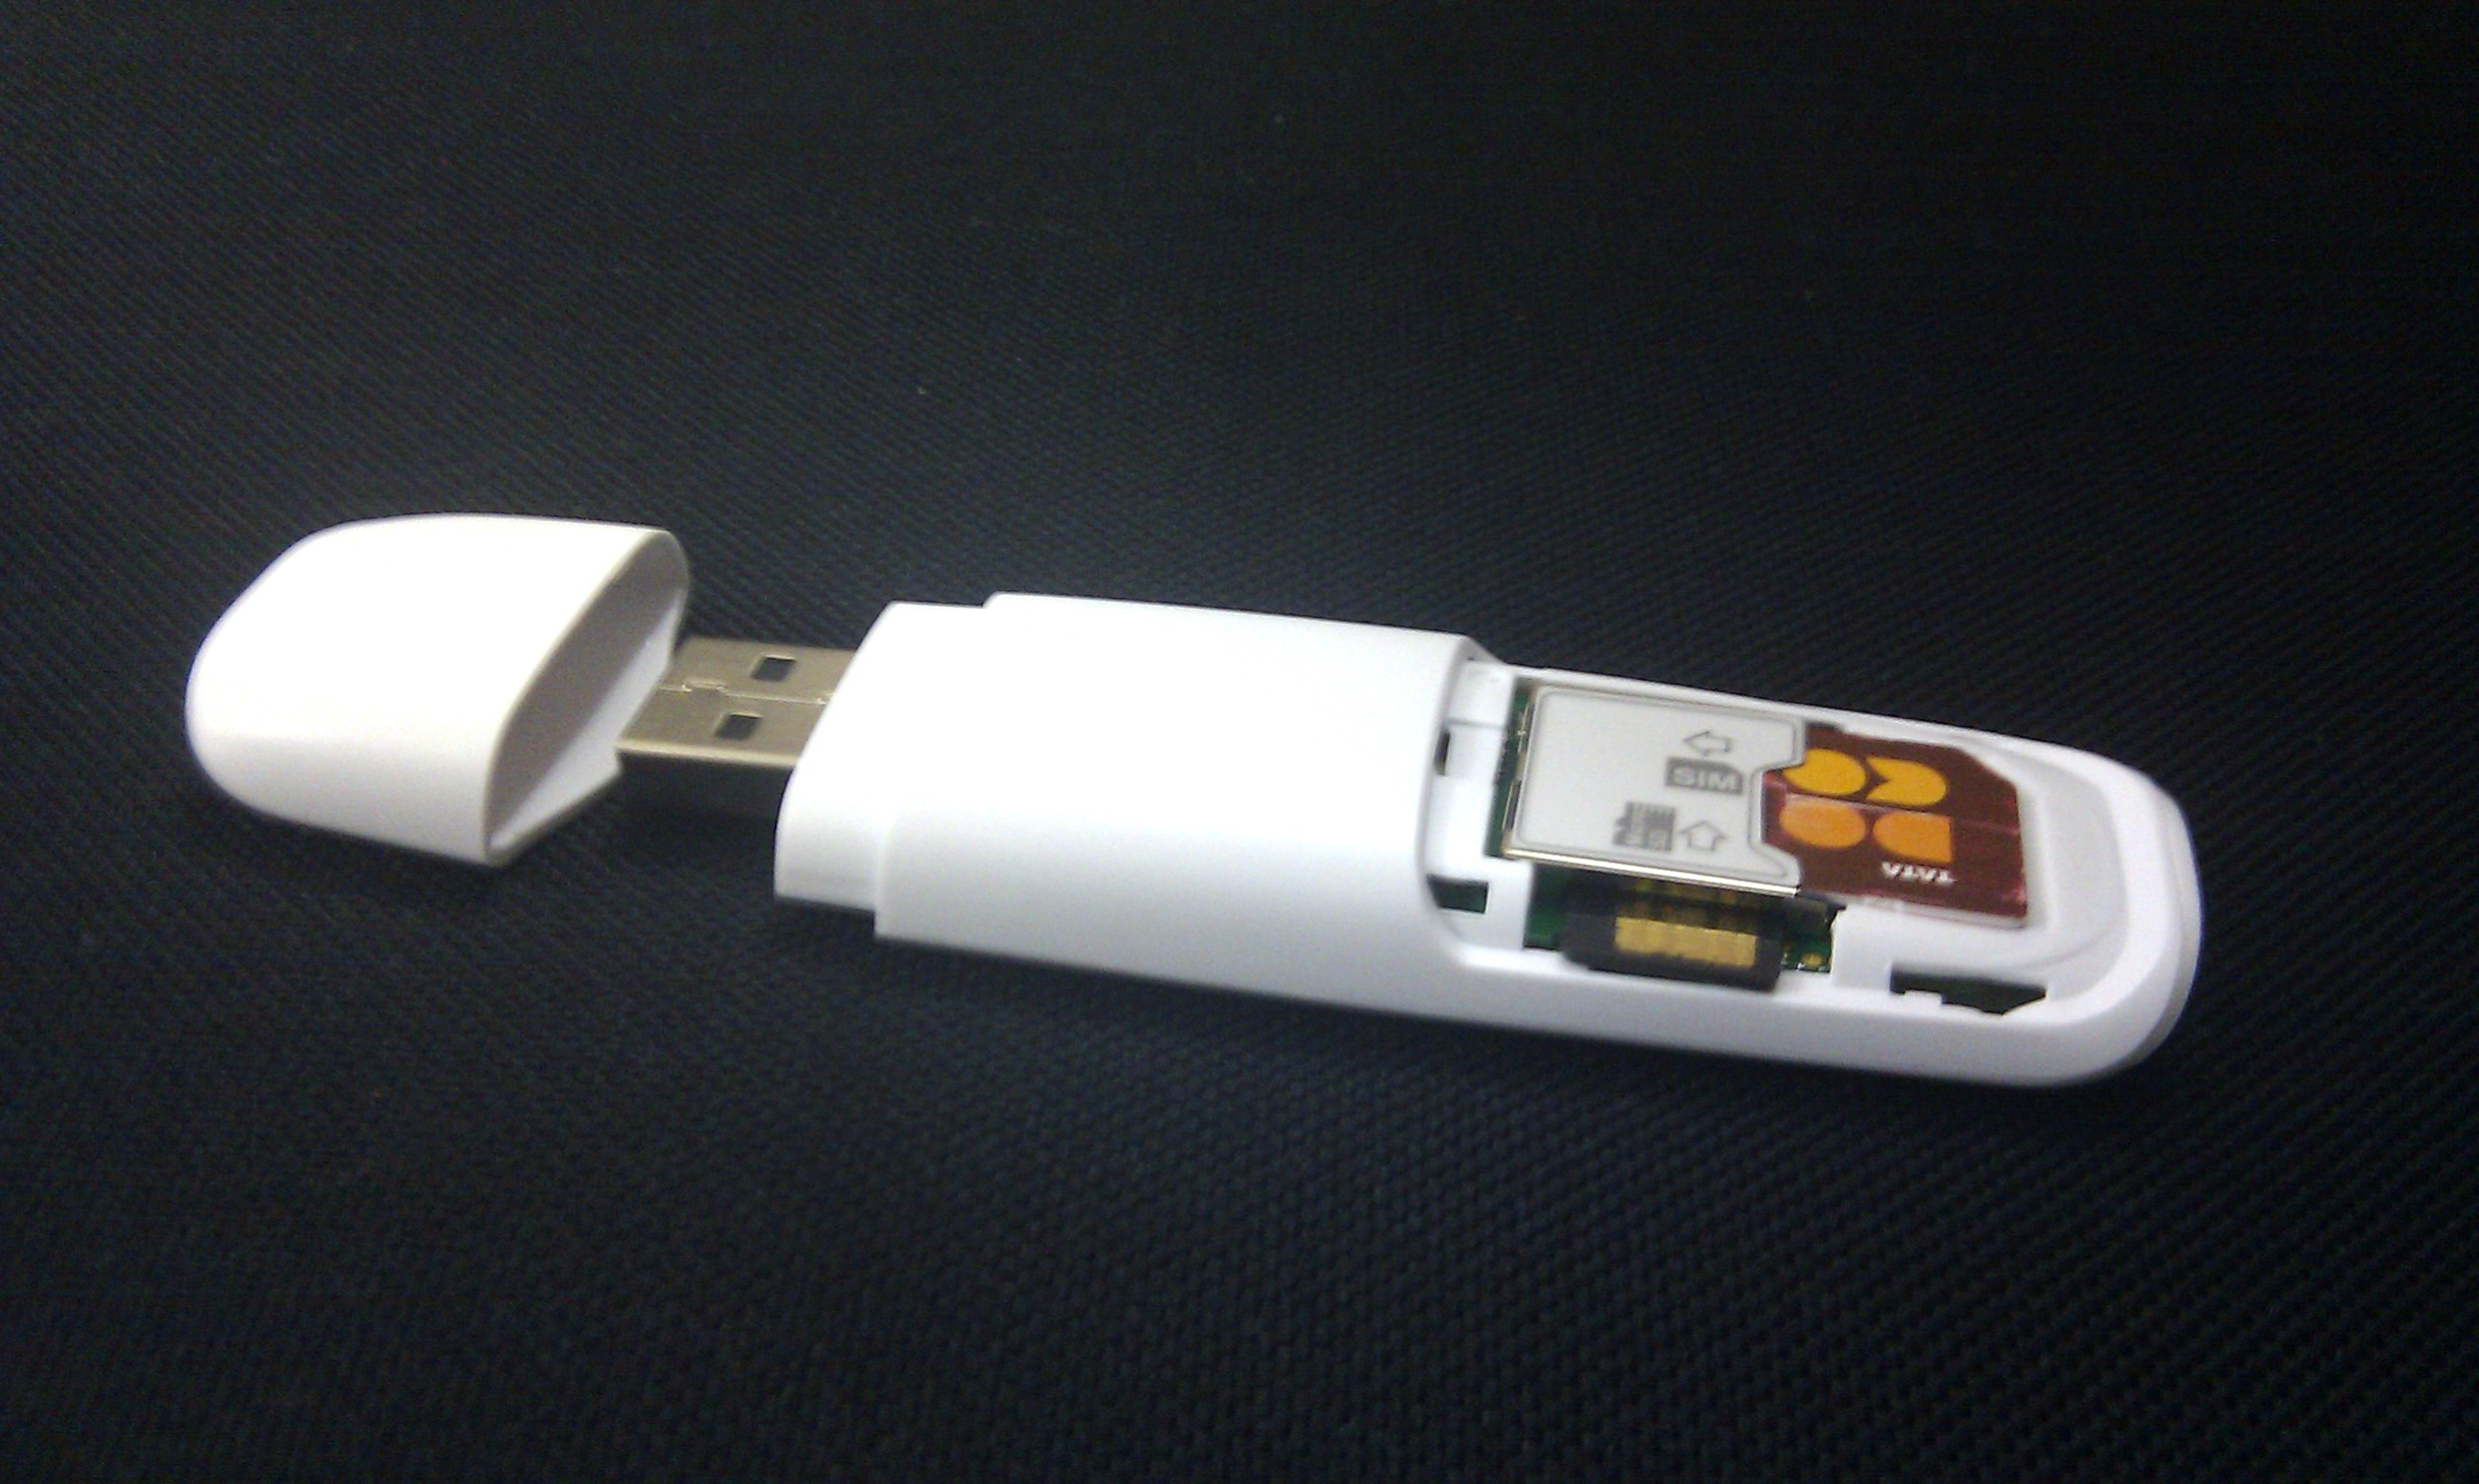 Setup your USB modem on Ubuntu - The TechFootPrint